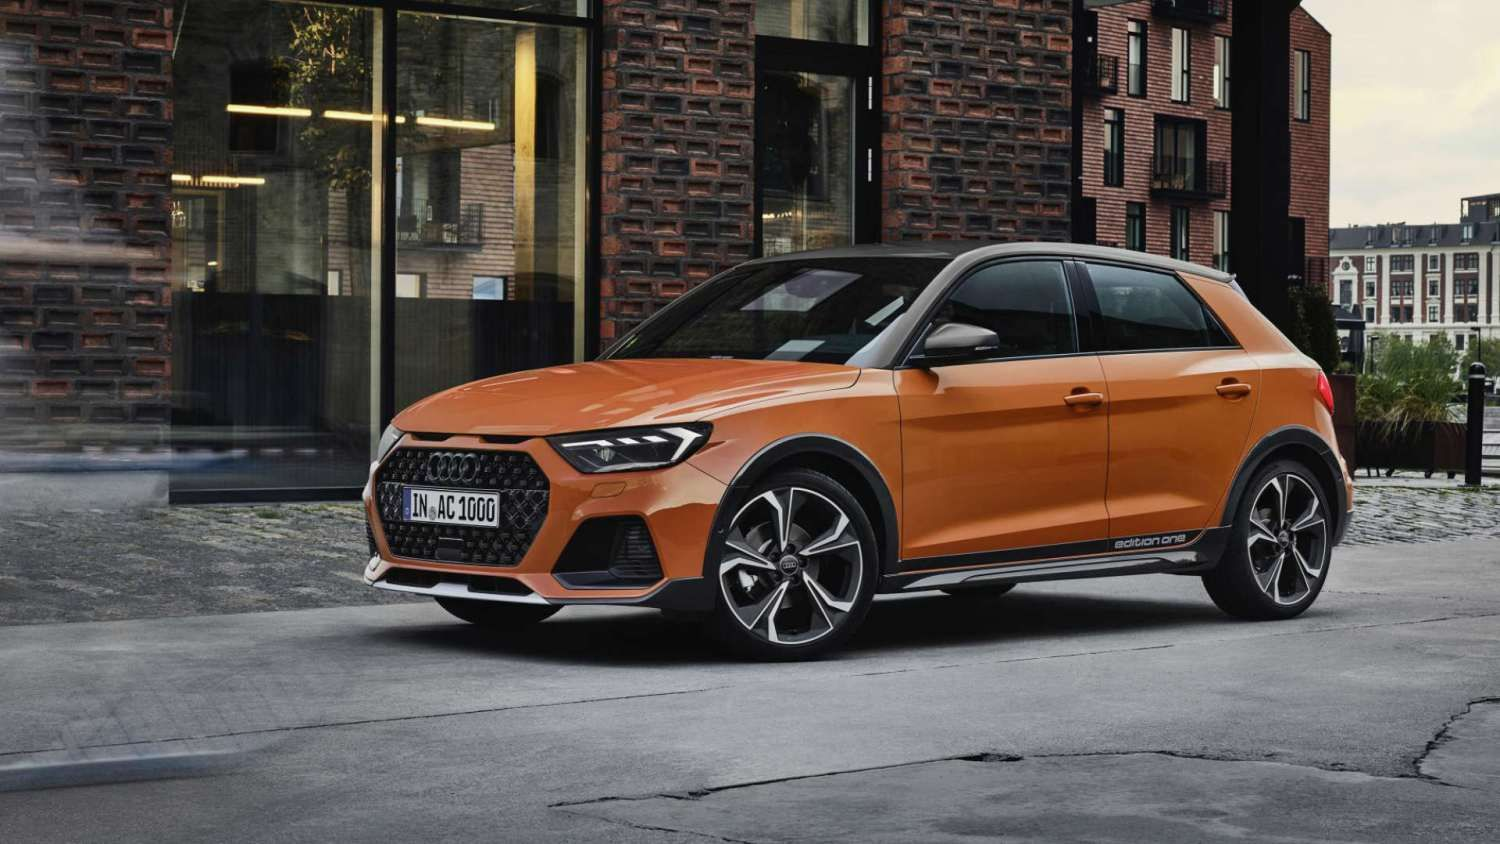 Audi offers fixedprice car insurance for three years